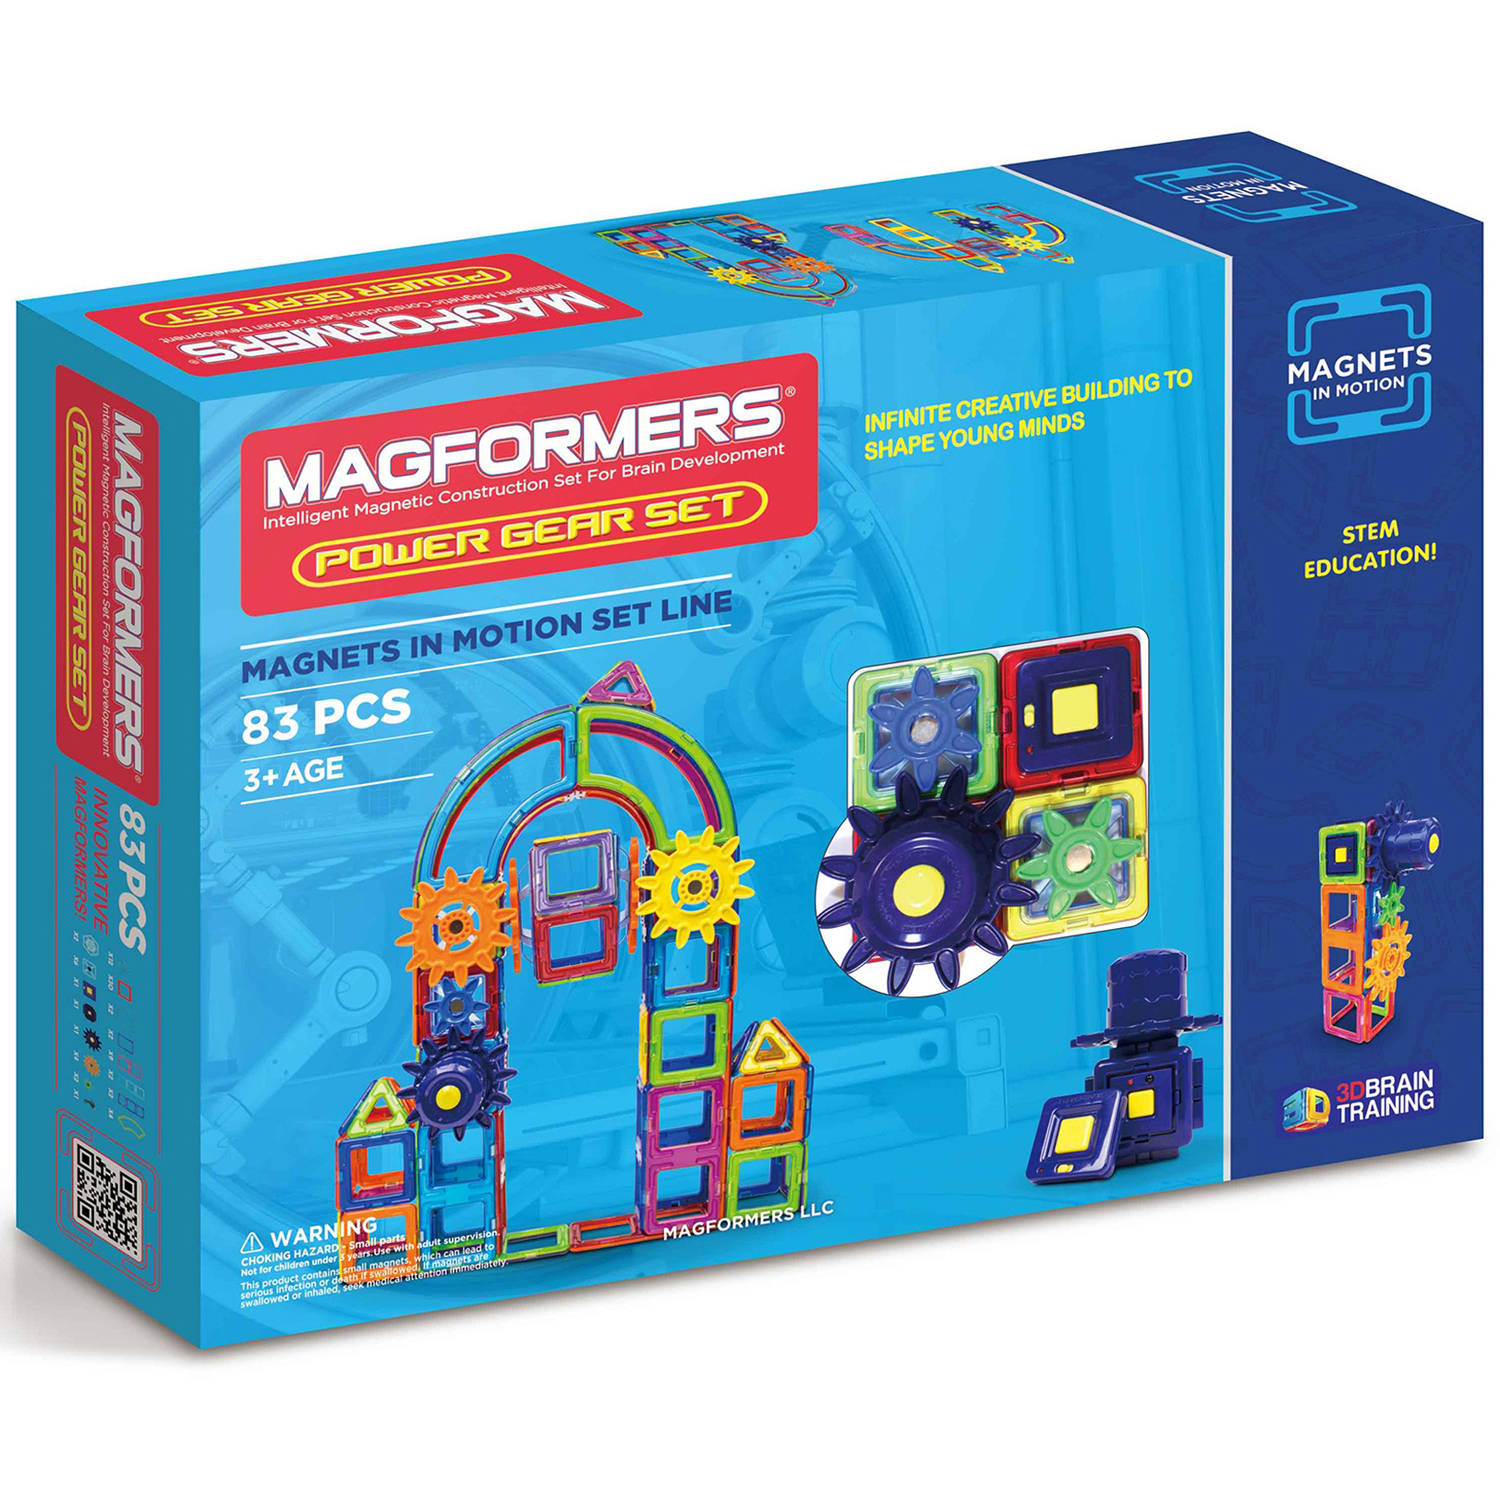 Magformers Magnets in Motion Power 83-Piece Magnetic Construction Set by Magformers